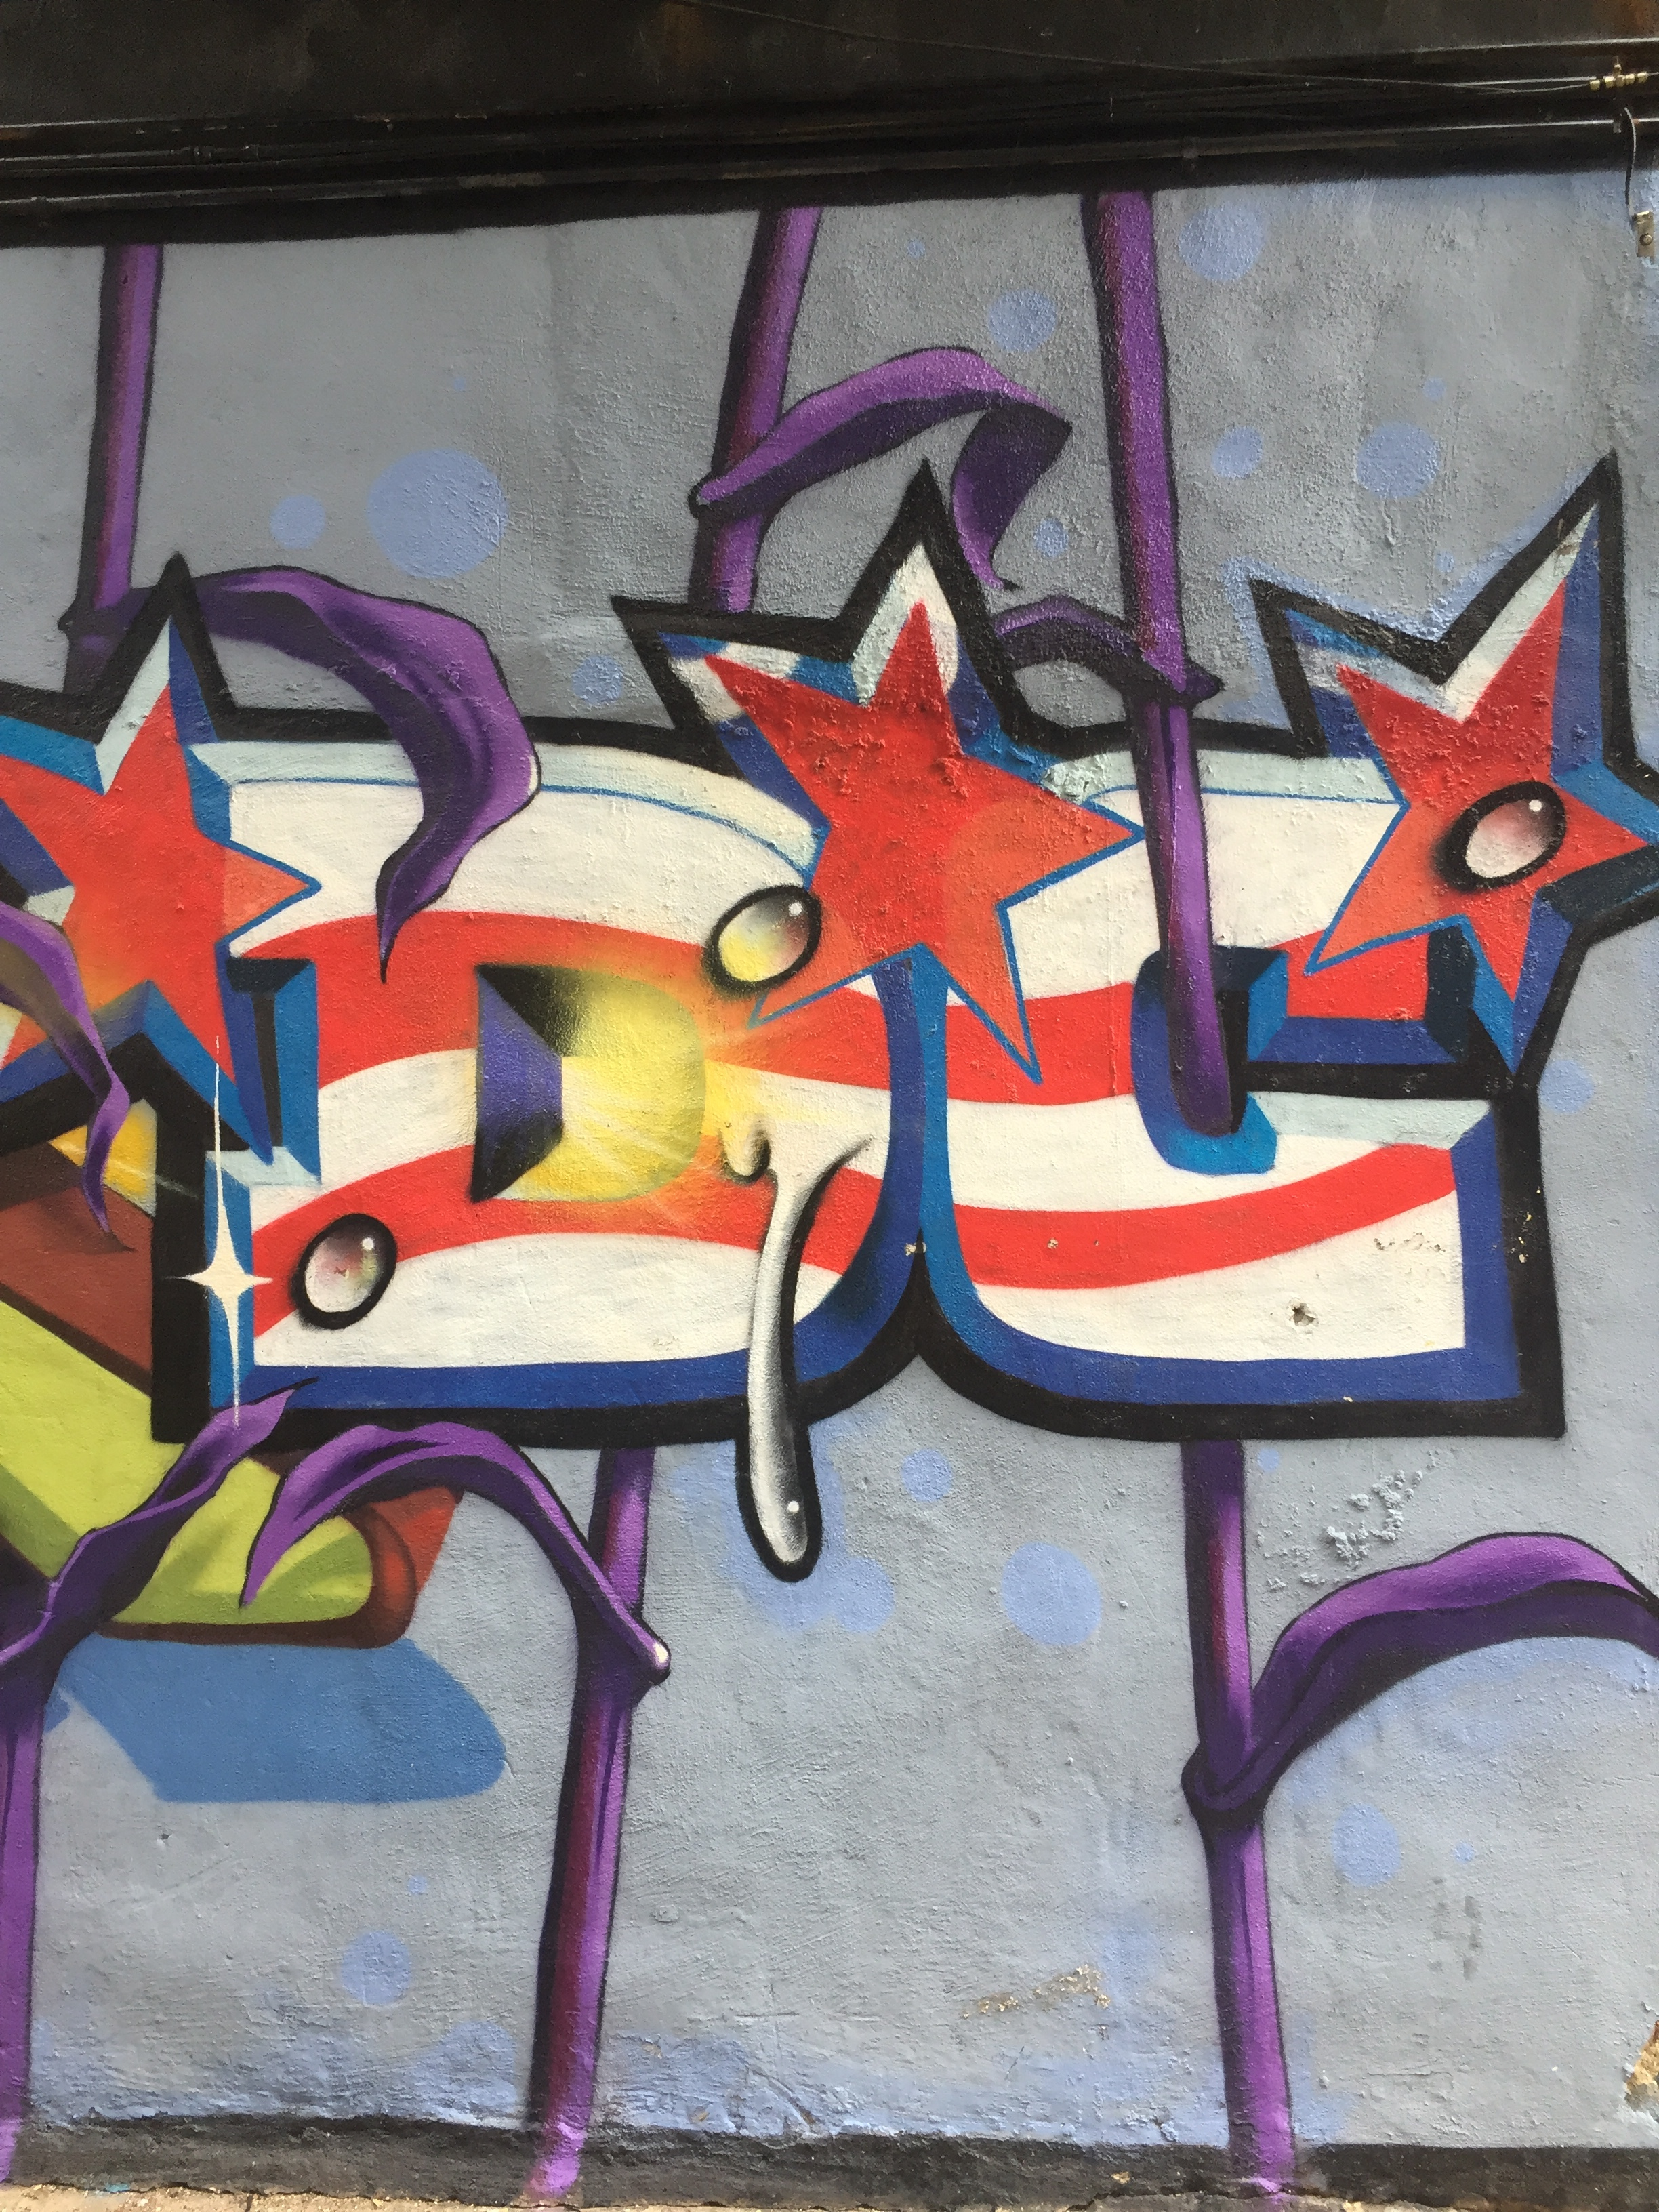 Washington, D.C. Graffiti | Best Instagram Murals